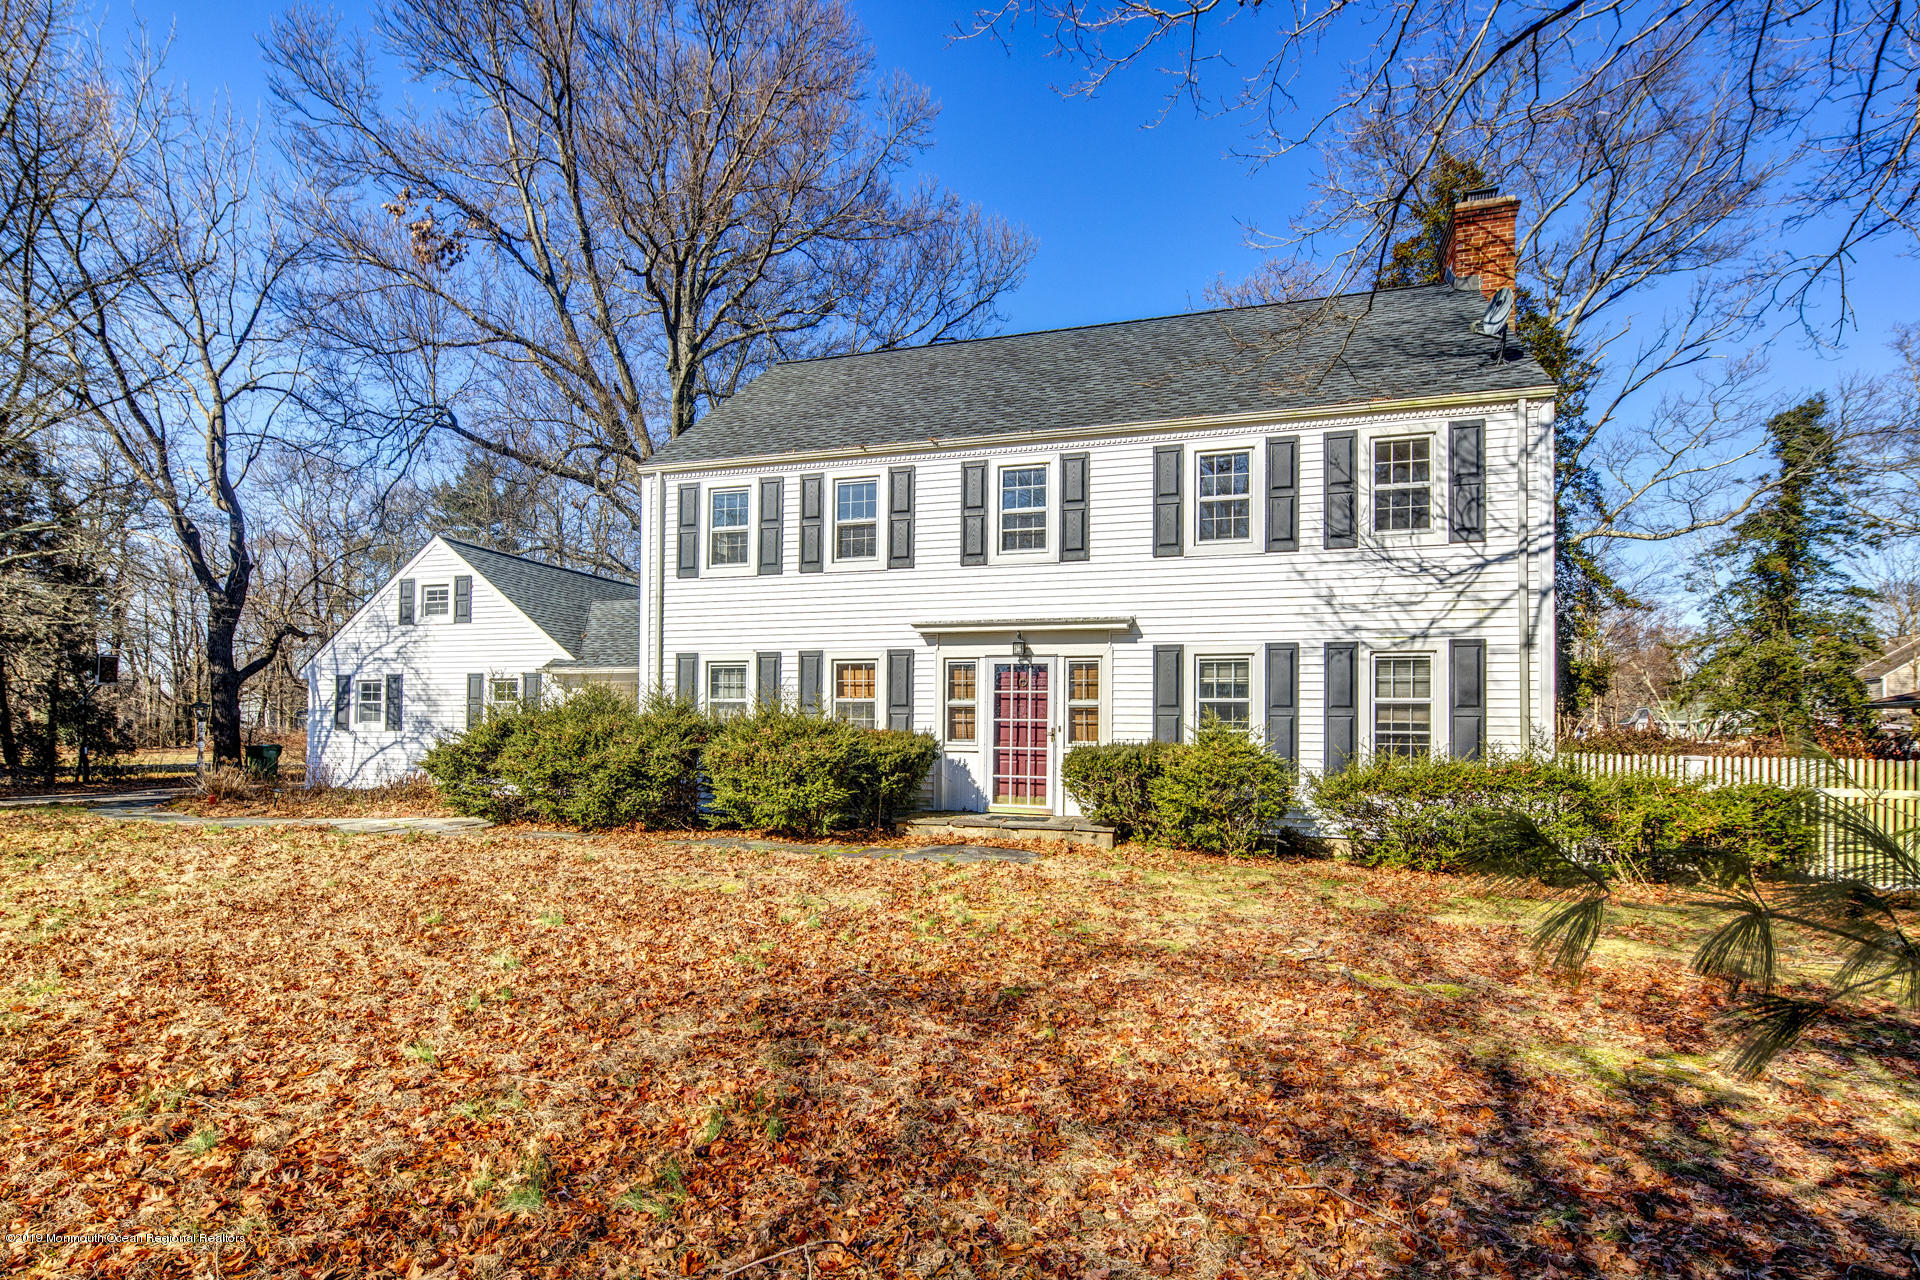 Looking for a project, flip or beautiful family home? This classic colonial looks out at the golf course in front, and in the back the almost acre property has a beautiful inground pool in a parklike setting of lawn and mature trees.  Close to Jersey Shore Medical and Asbury Park.  With some TLC this is a true treasure.